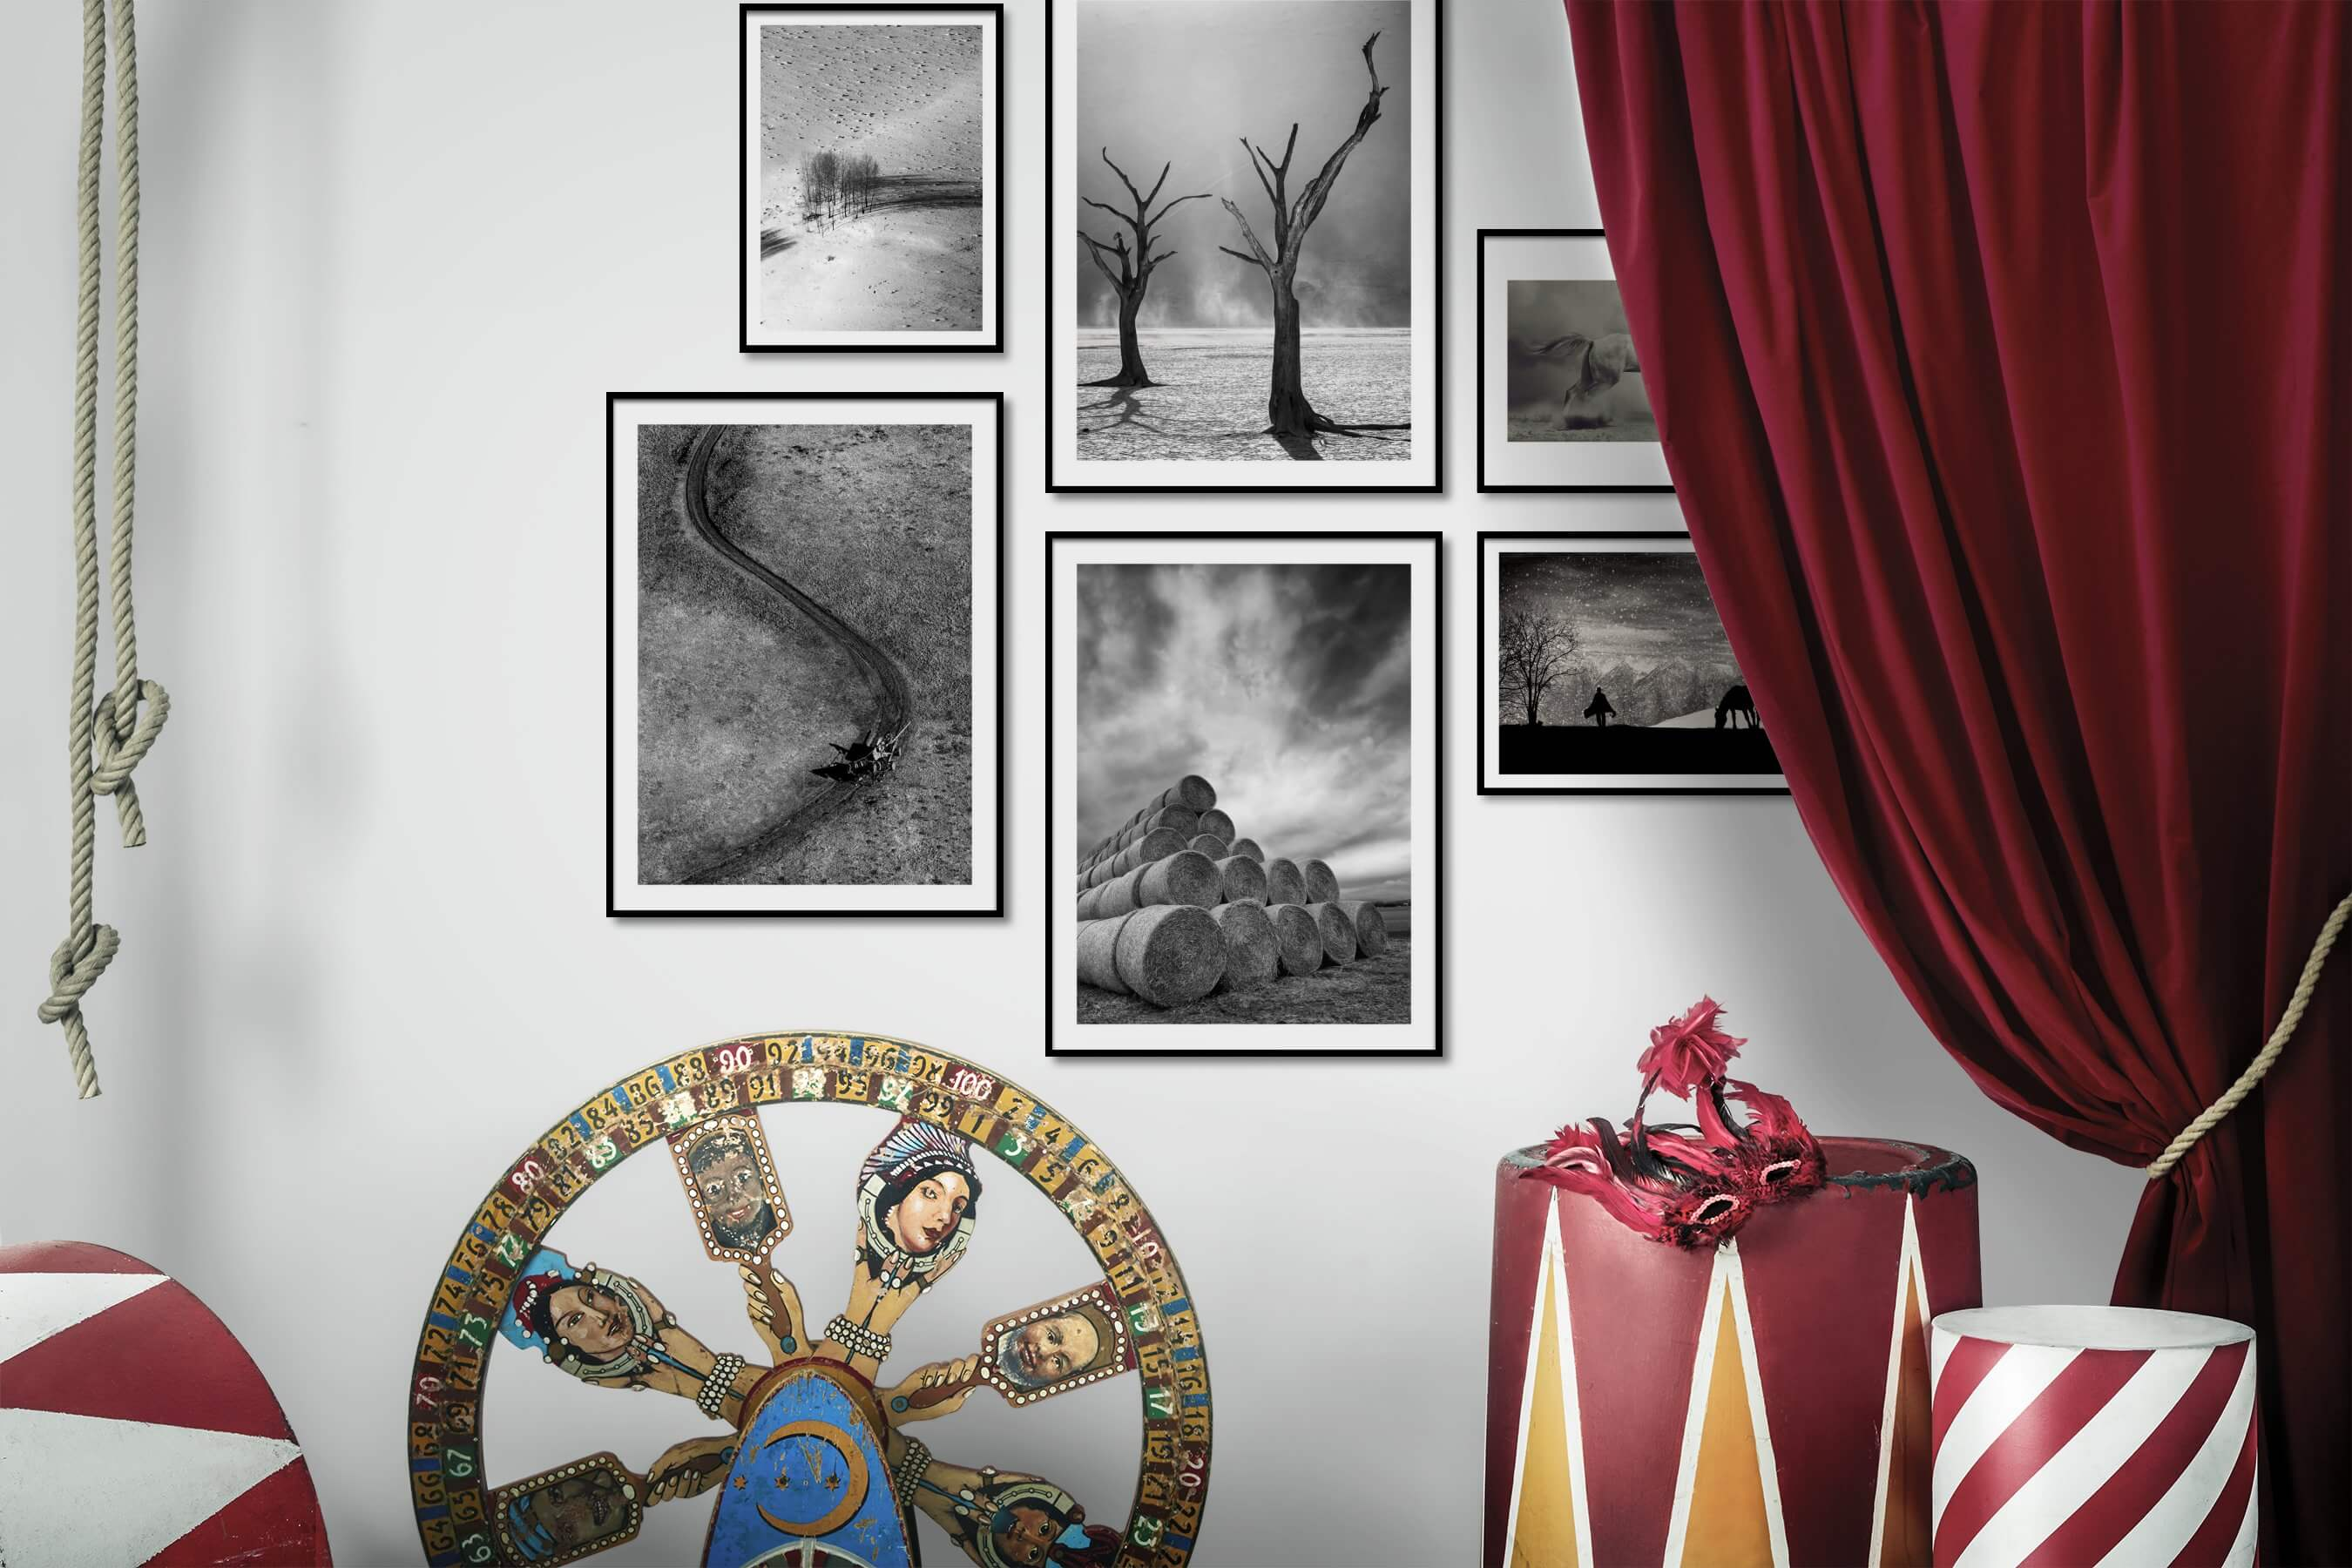 Gallery wall idea with six framed pictures arranged on a wall depicting Black & White, Nature, For the Minimalist, Country Life, For the Moderate, and Animals